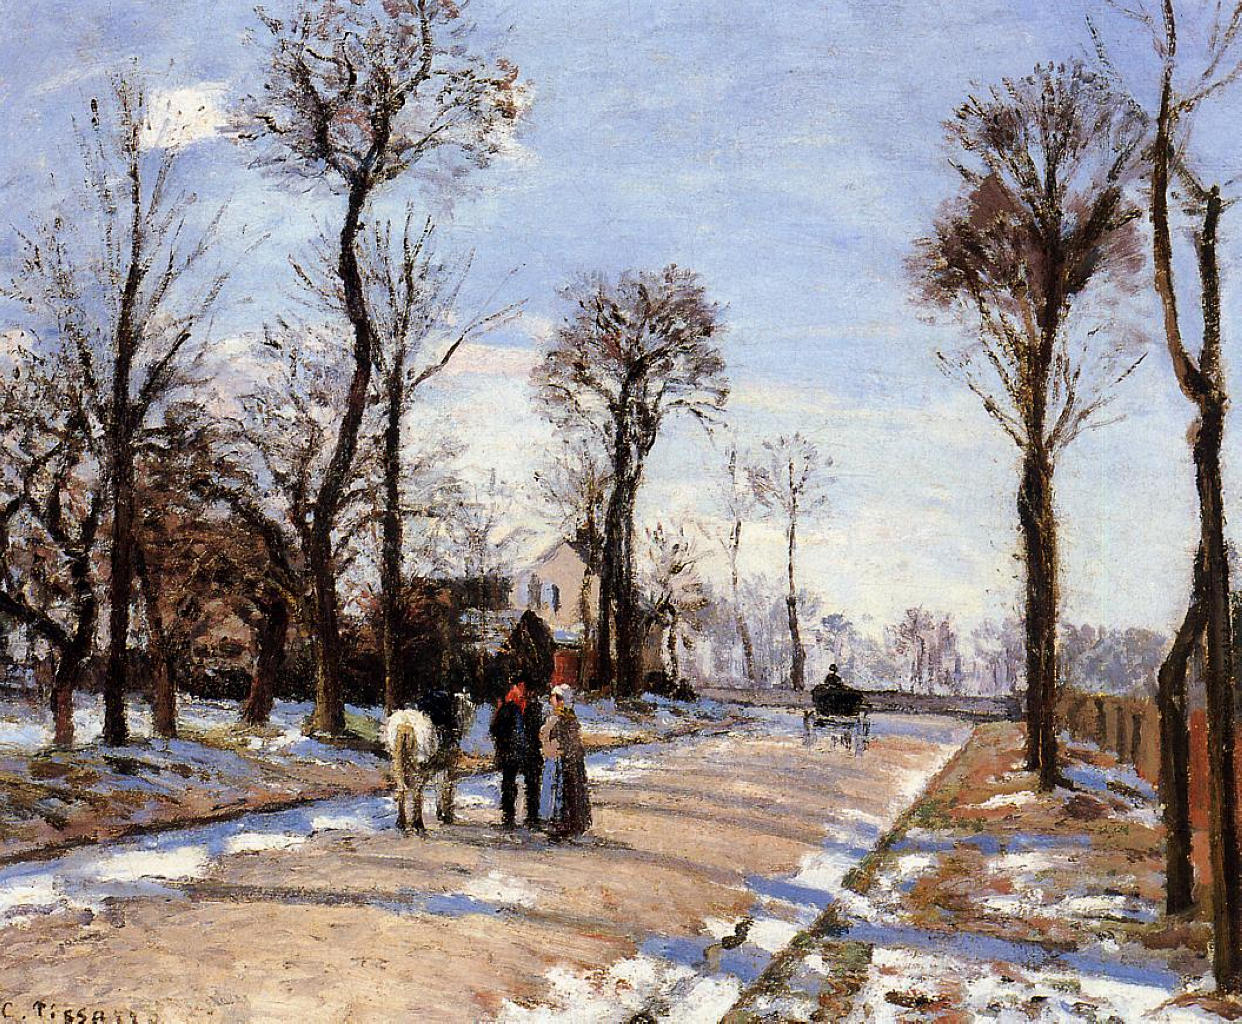 Street Winter Sunlight And Snow, Camille Pissarro, 1872